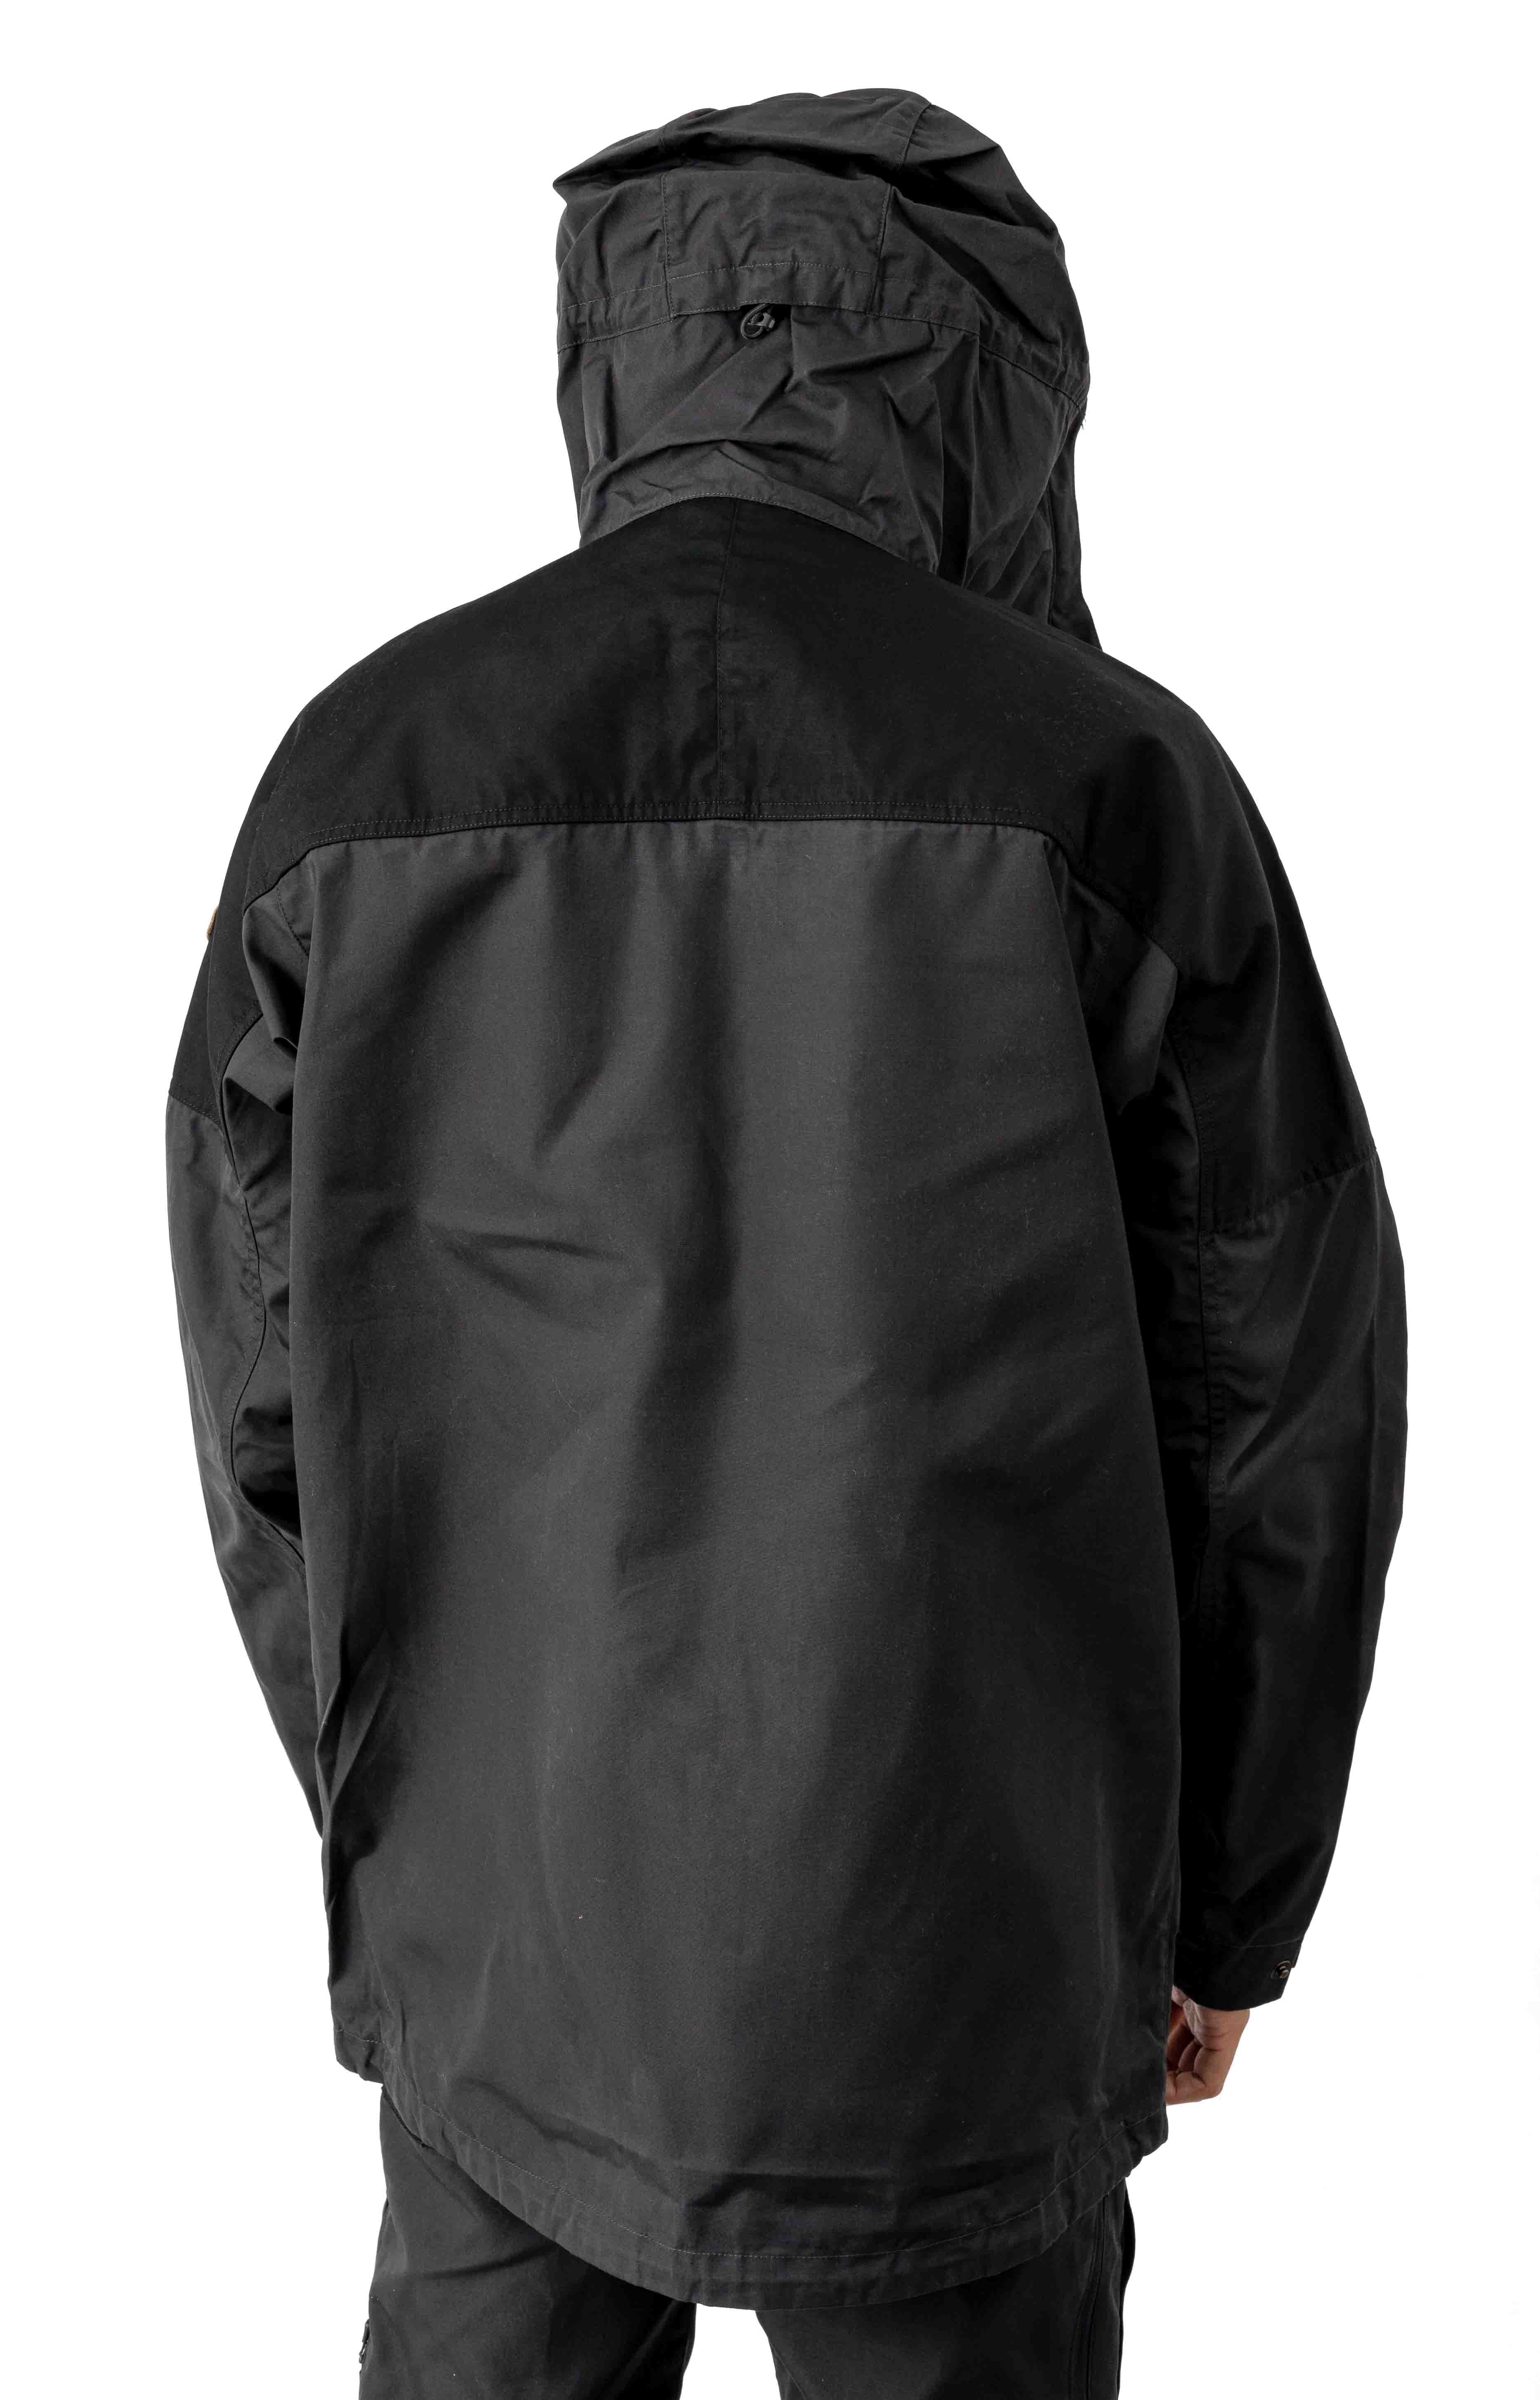 Vidda Pro Jacket - Dark Grey/Black 3